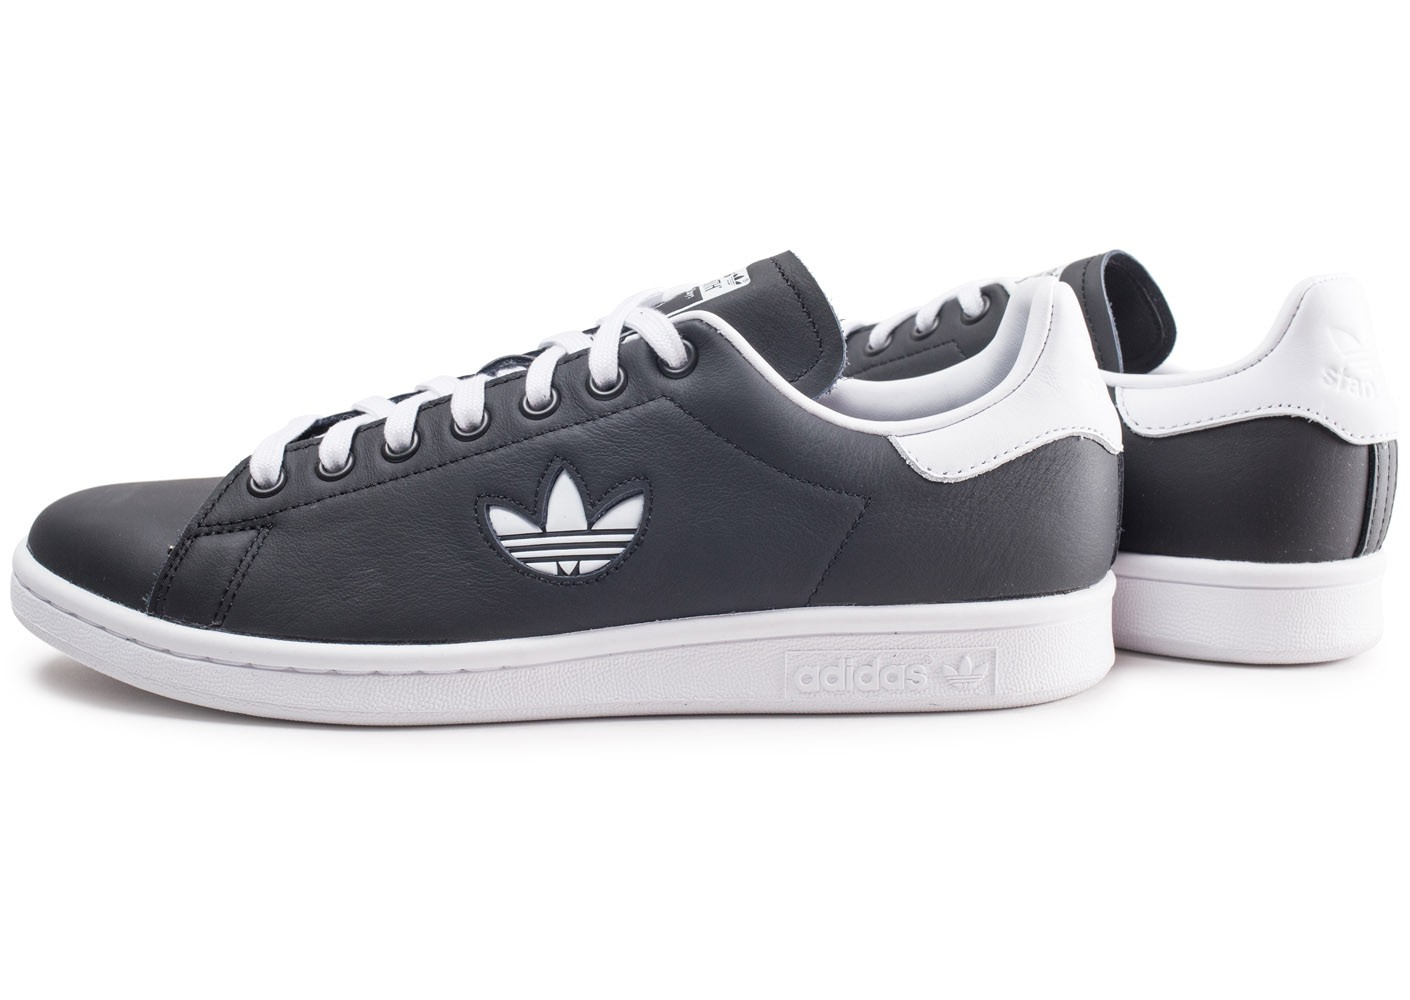 adidas Stan Smith noire et blanche Chaussures Baskets